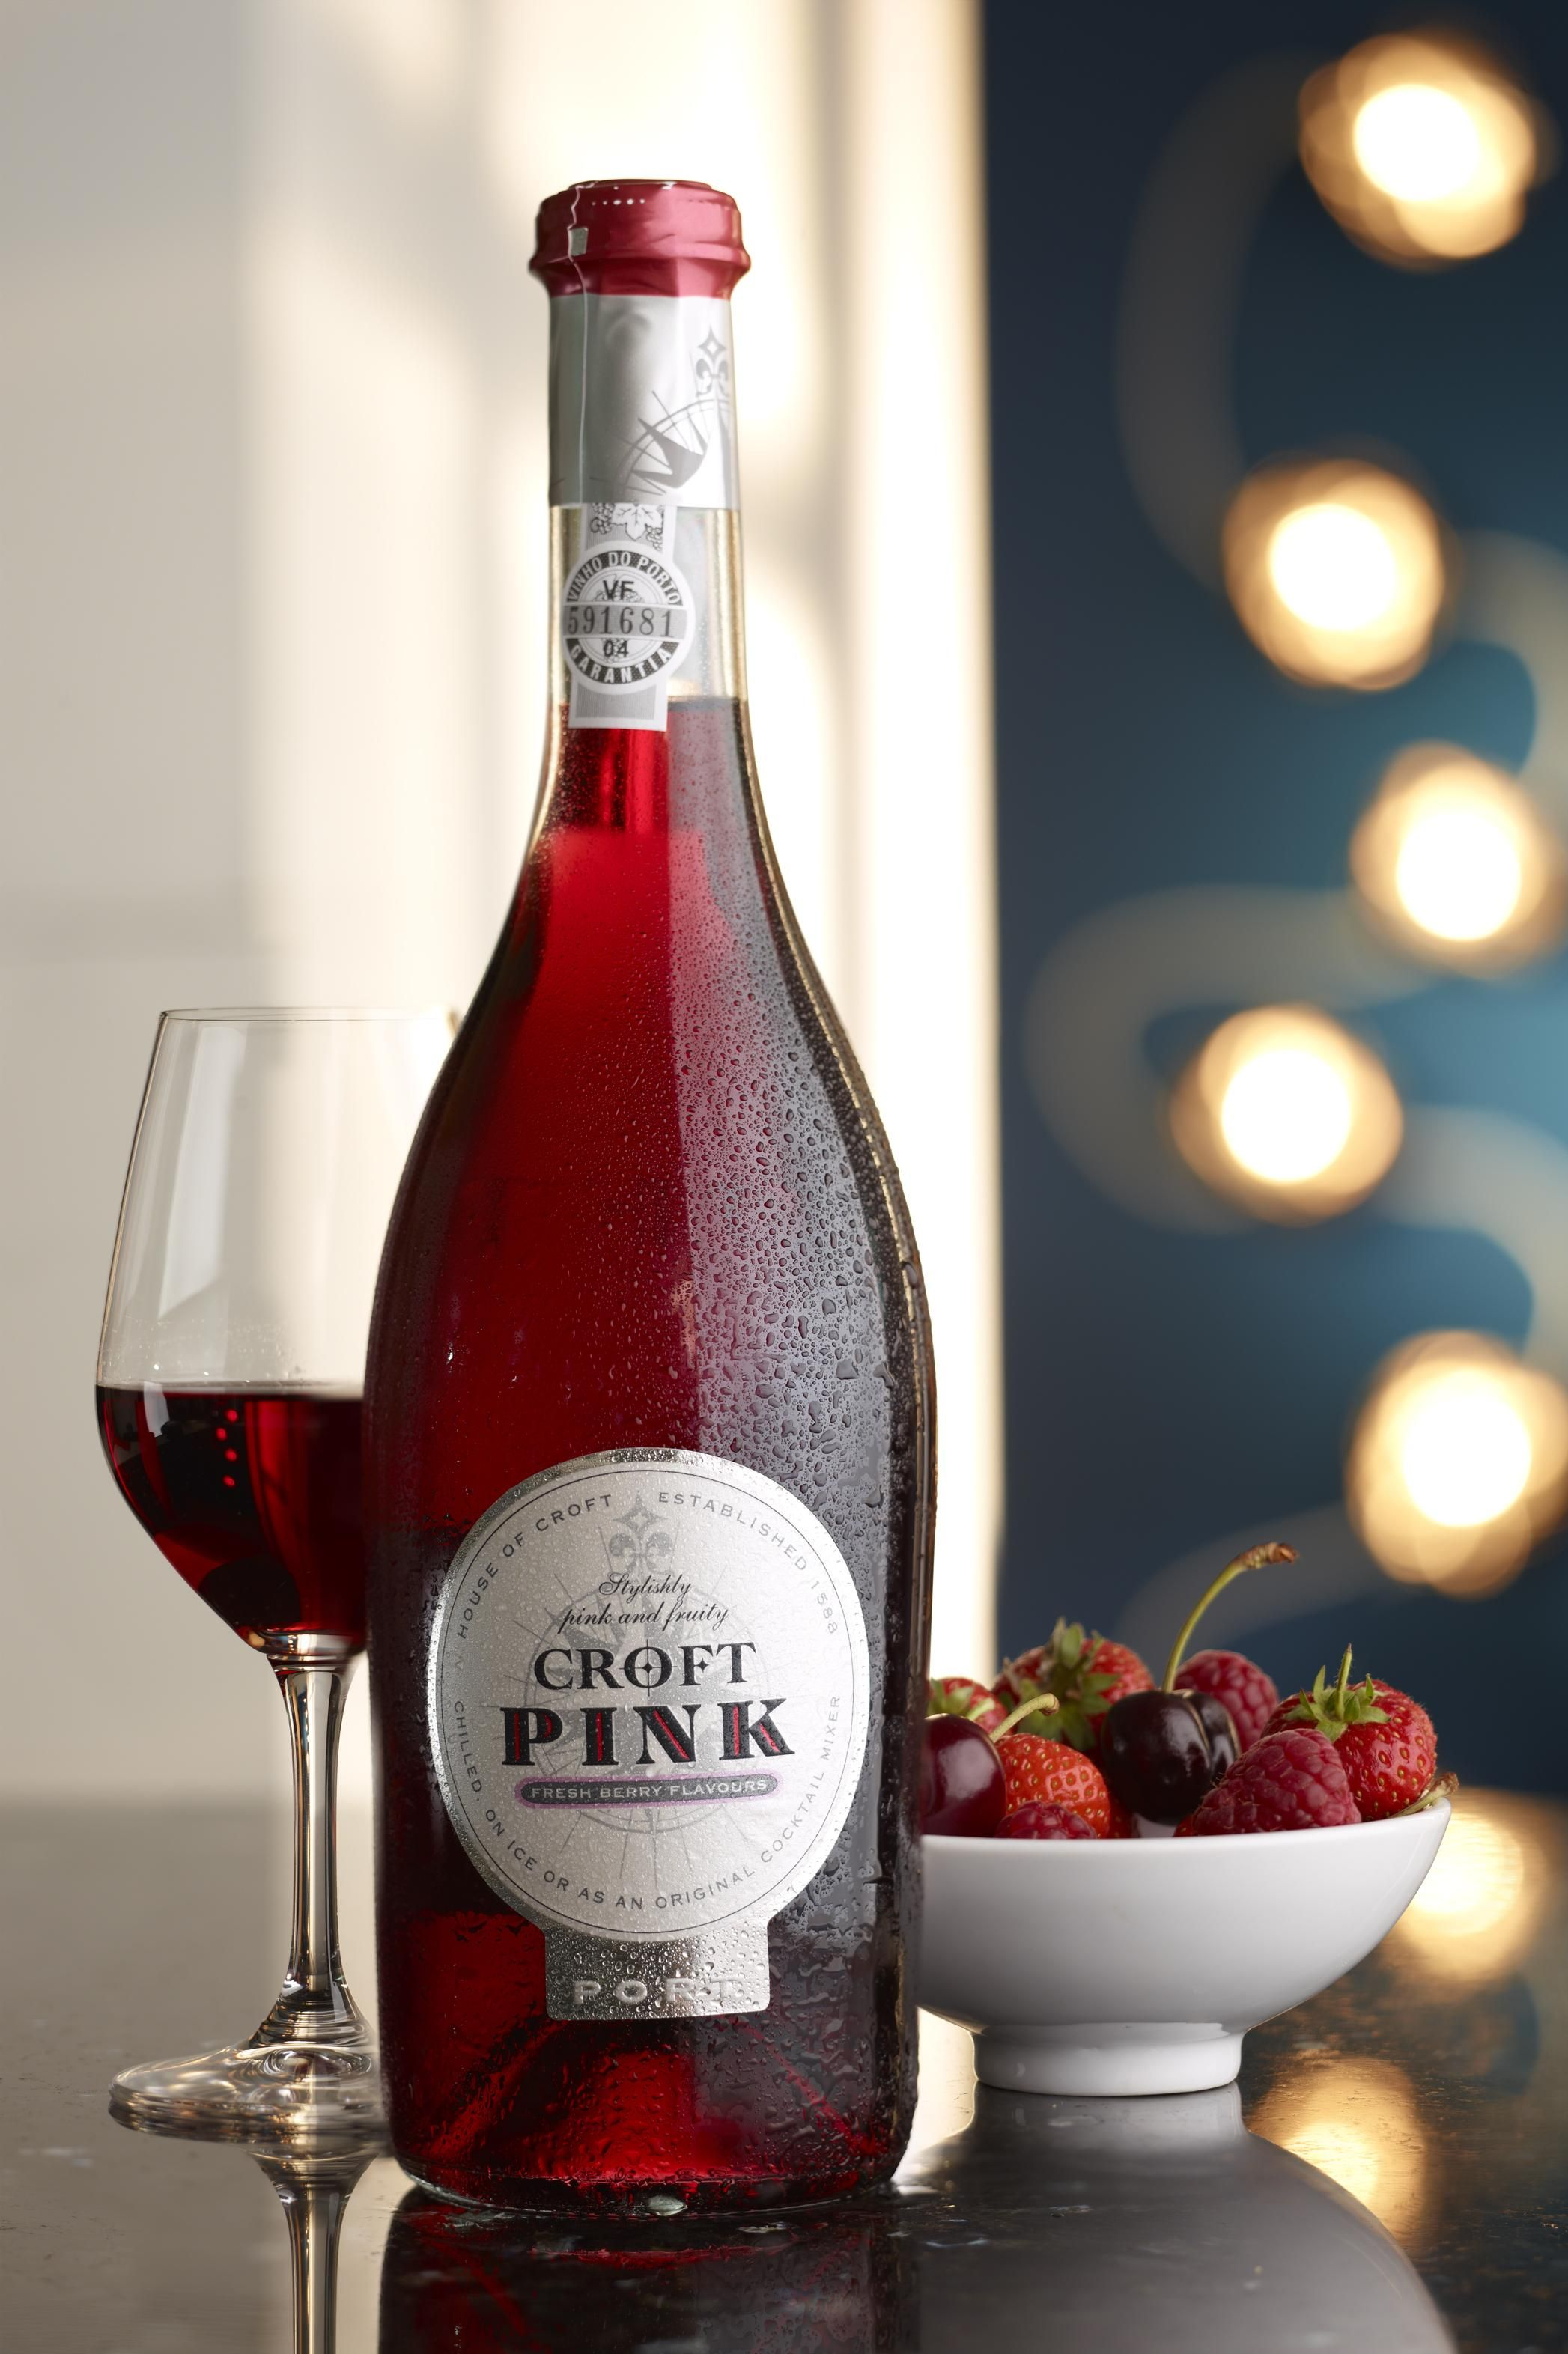 Not Your Grandfather S Port Will Fortified Wine Ever Enjoy A Revival Wine Fortified Wine Wine Desserts